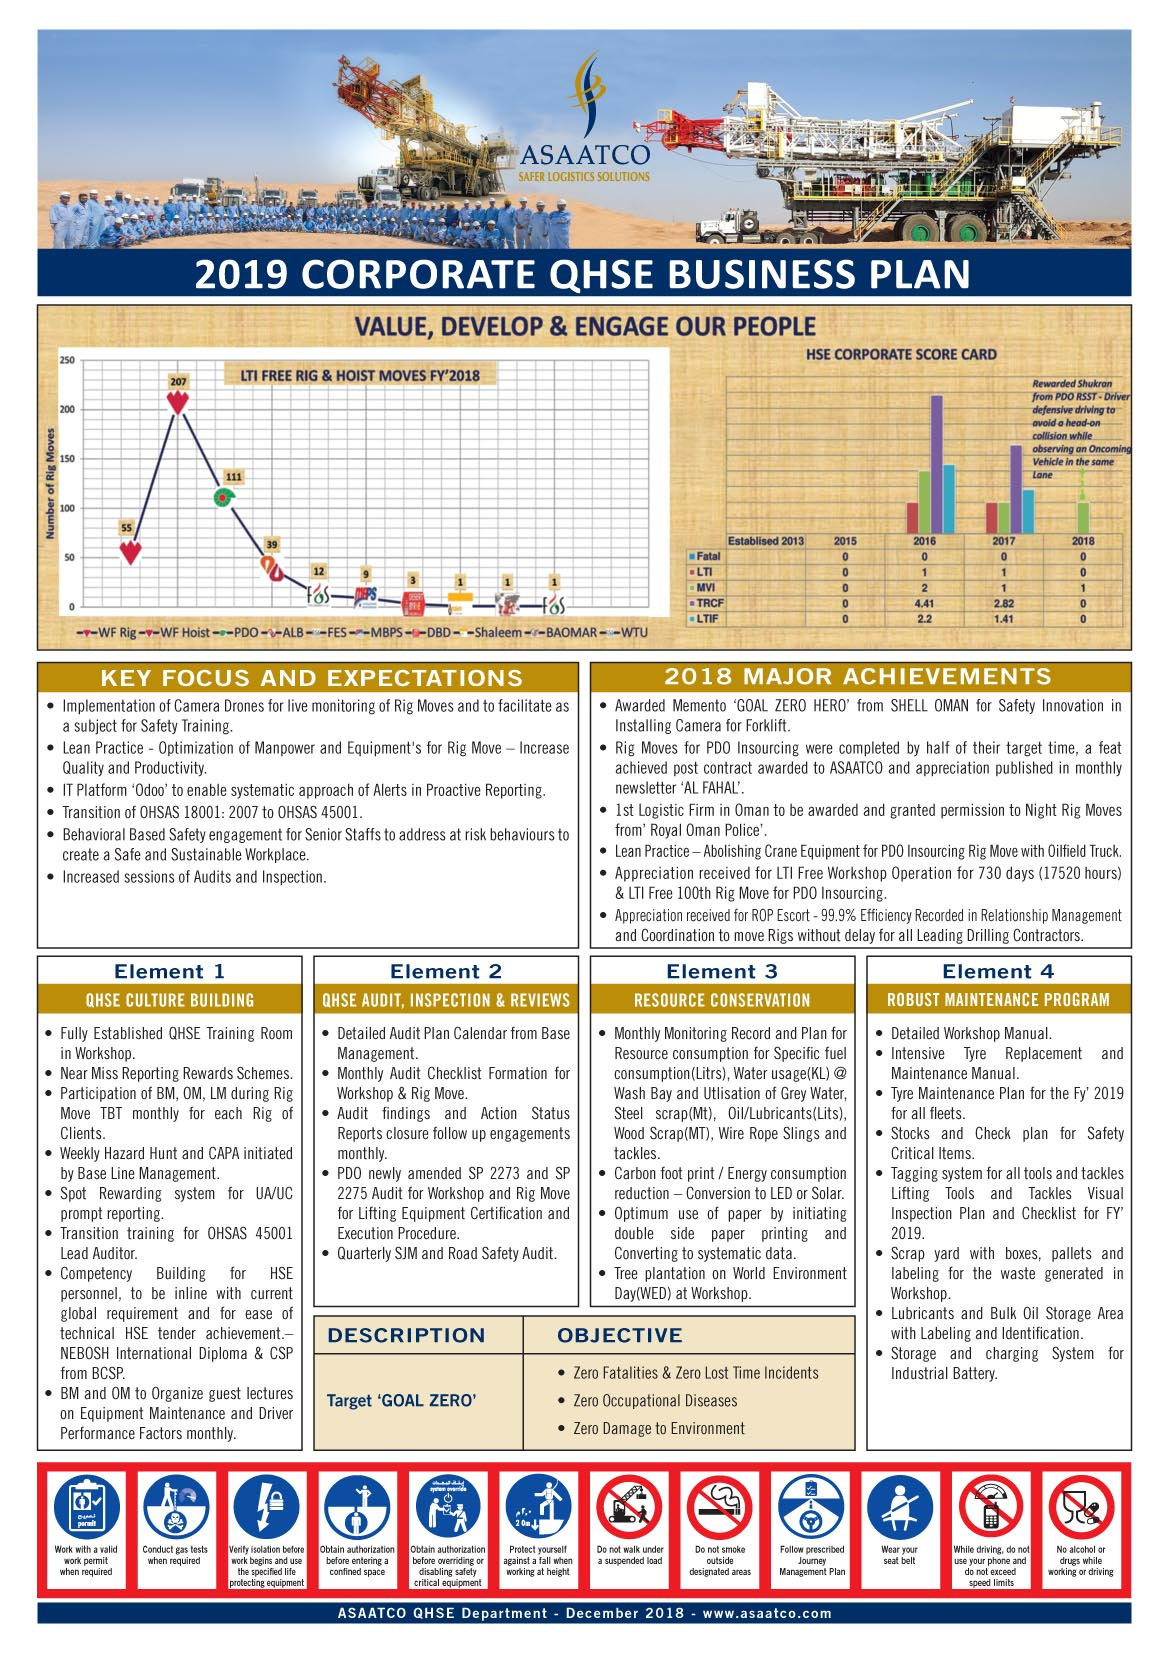 QHSE Business Plan 2019